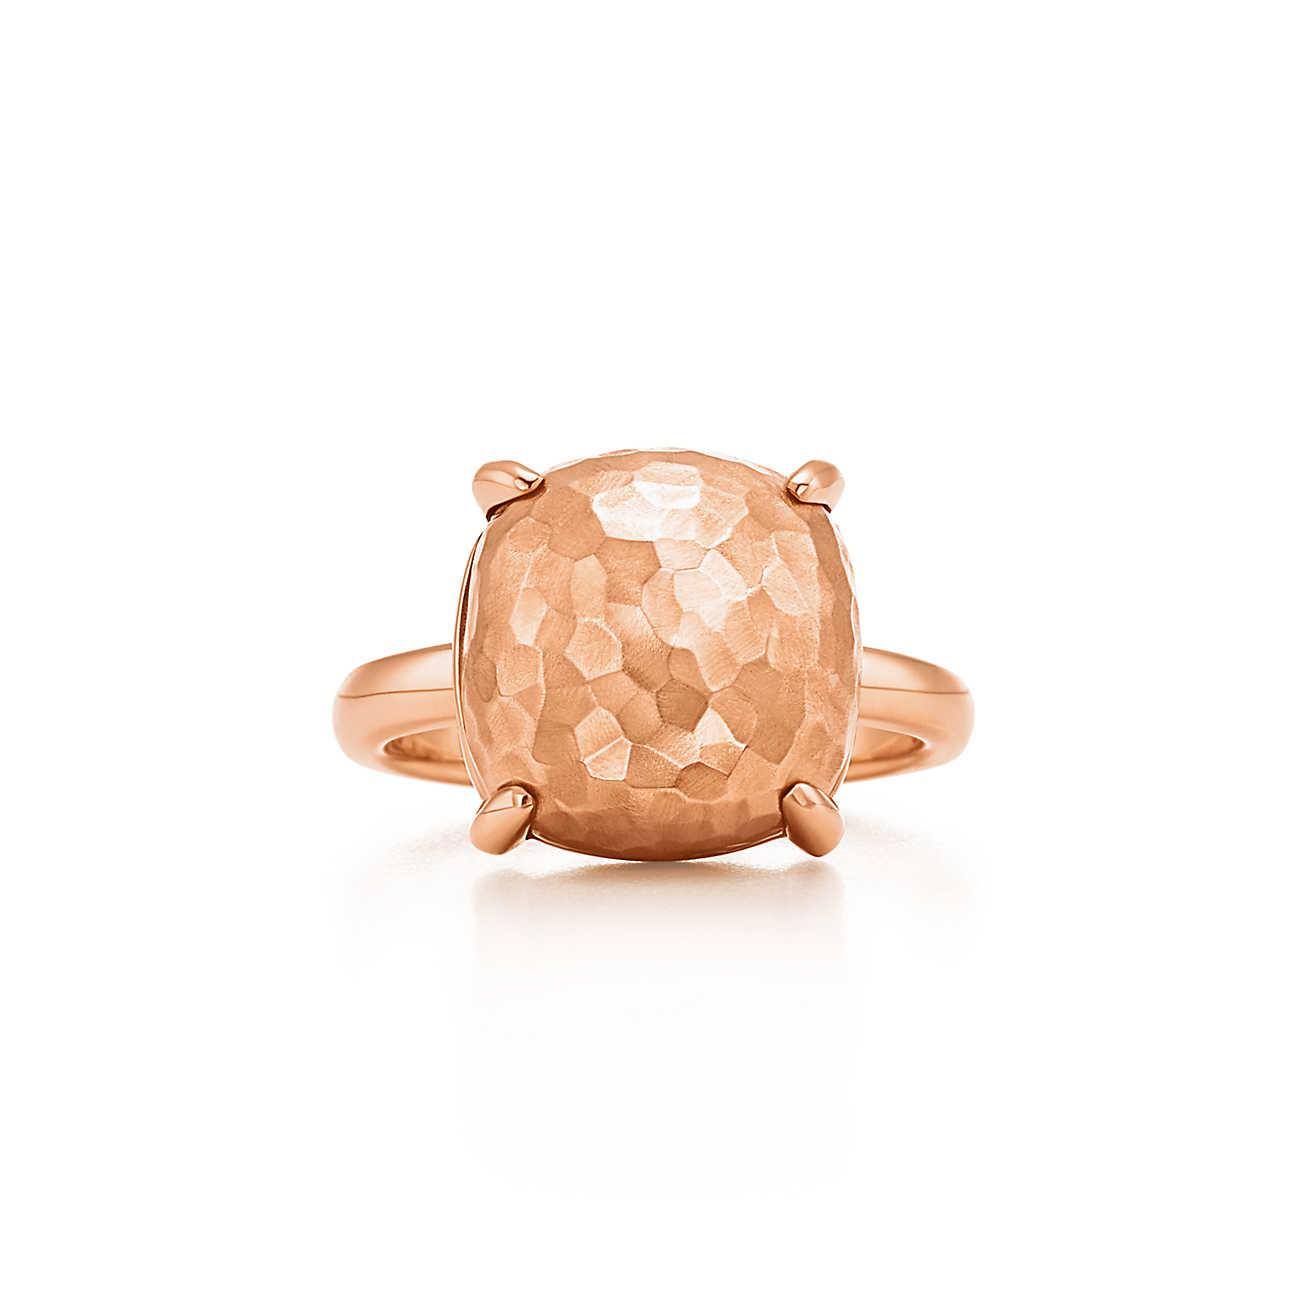 8b6ee4e09 Tiffany & Co. Paloma's Sugar Stacks Hammered Ring In 18k Rose Gold ...